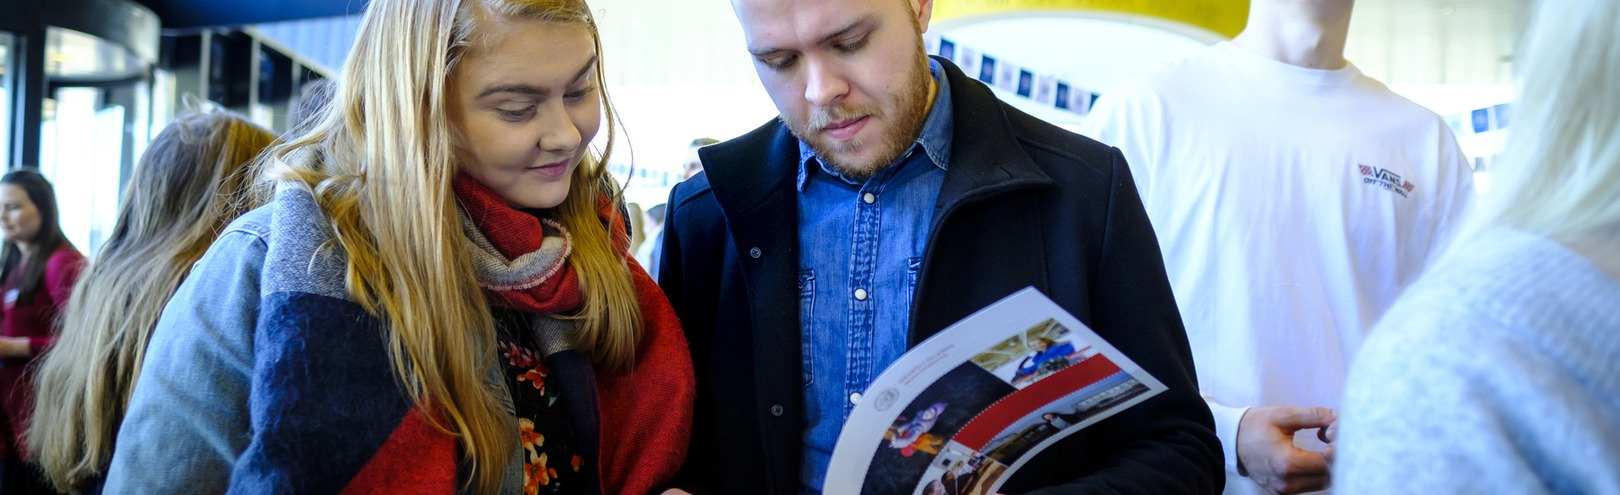 Talk to students and teachers at the Digital University Day  - Available at University of Iceland